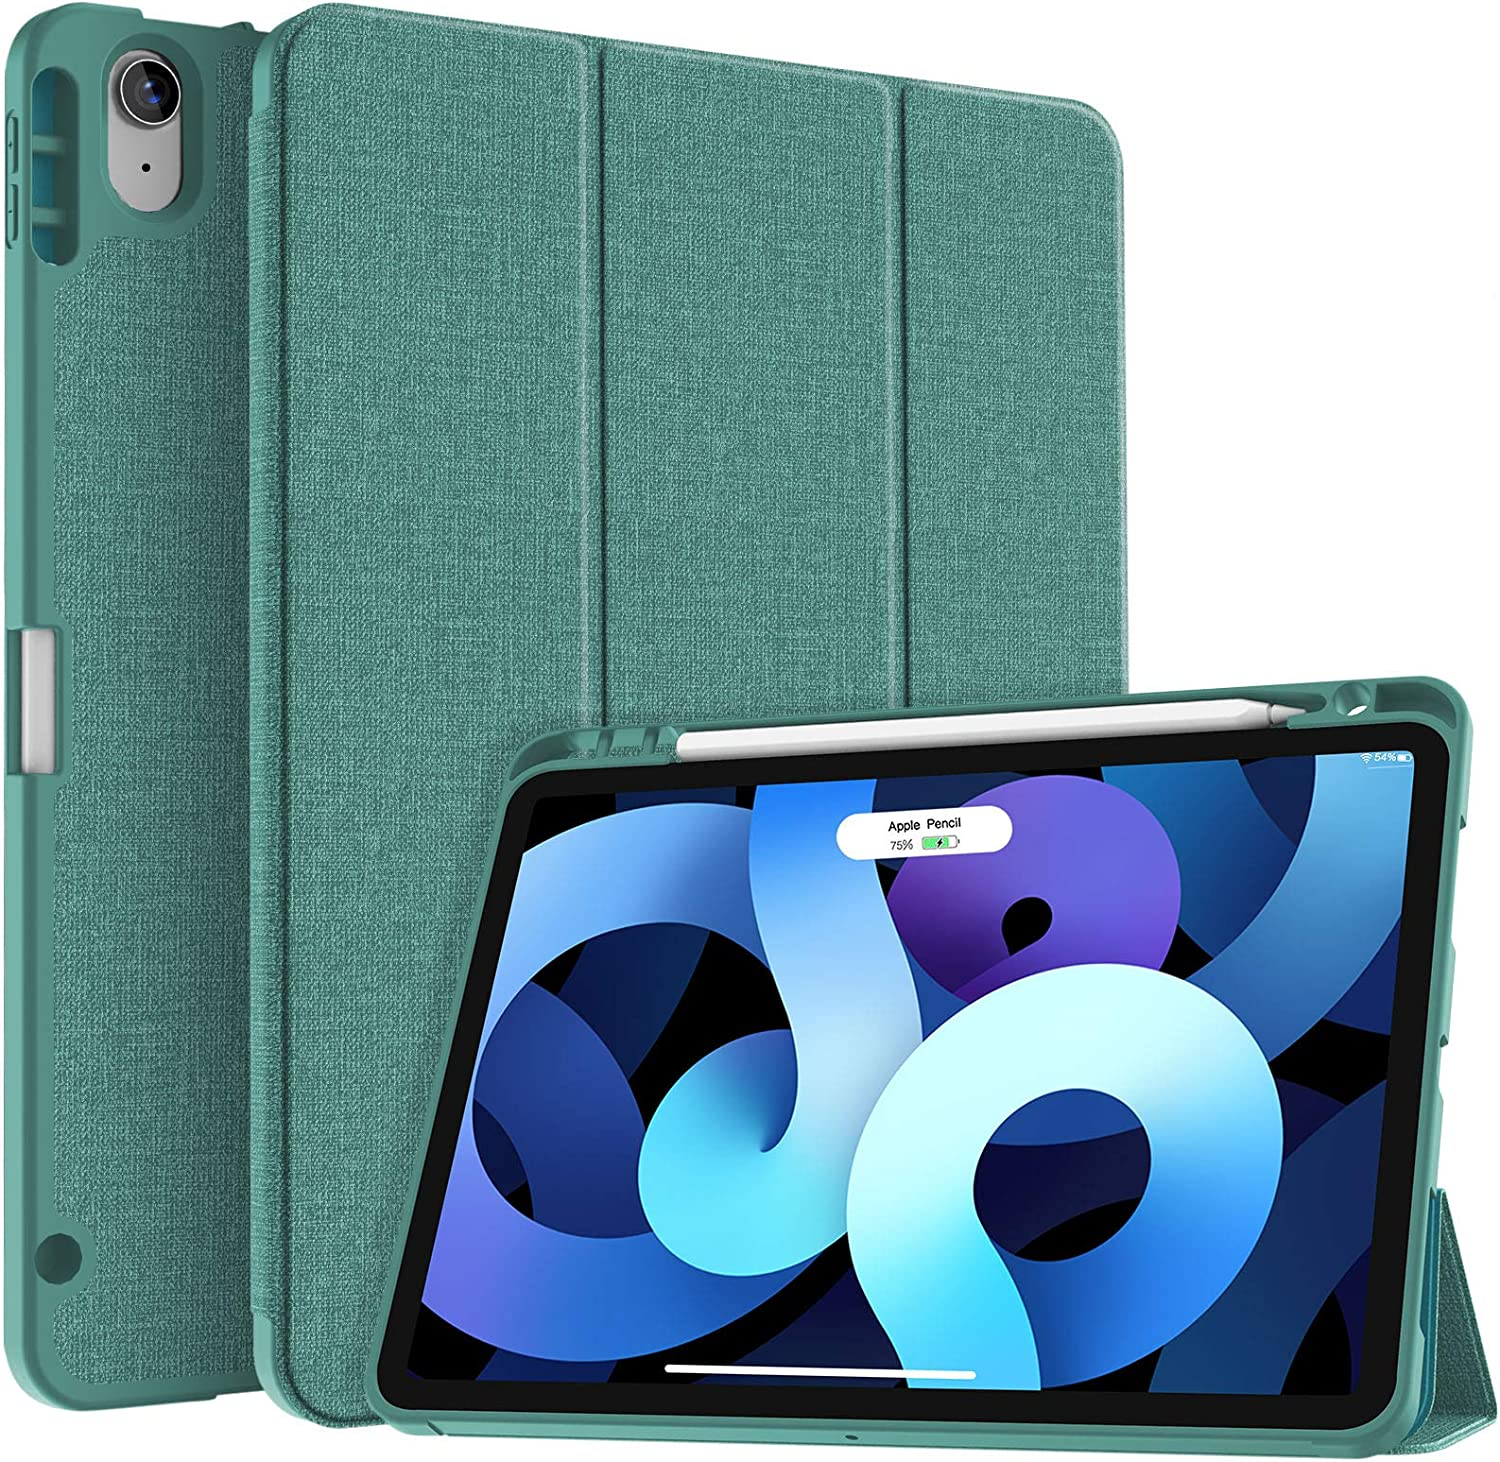 Soke iPad Air 4 Case 10.9 Inch 2020 with Pencil Holder - [Full Body Protection + Apple Pencil Charging], Soft TPU Back Cover for 2020 New iPad Air 4th Generation,Lake Blue